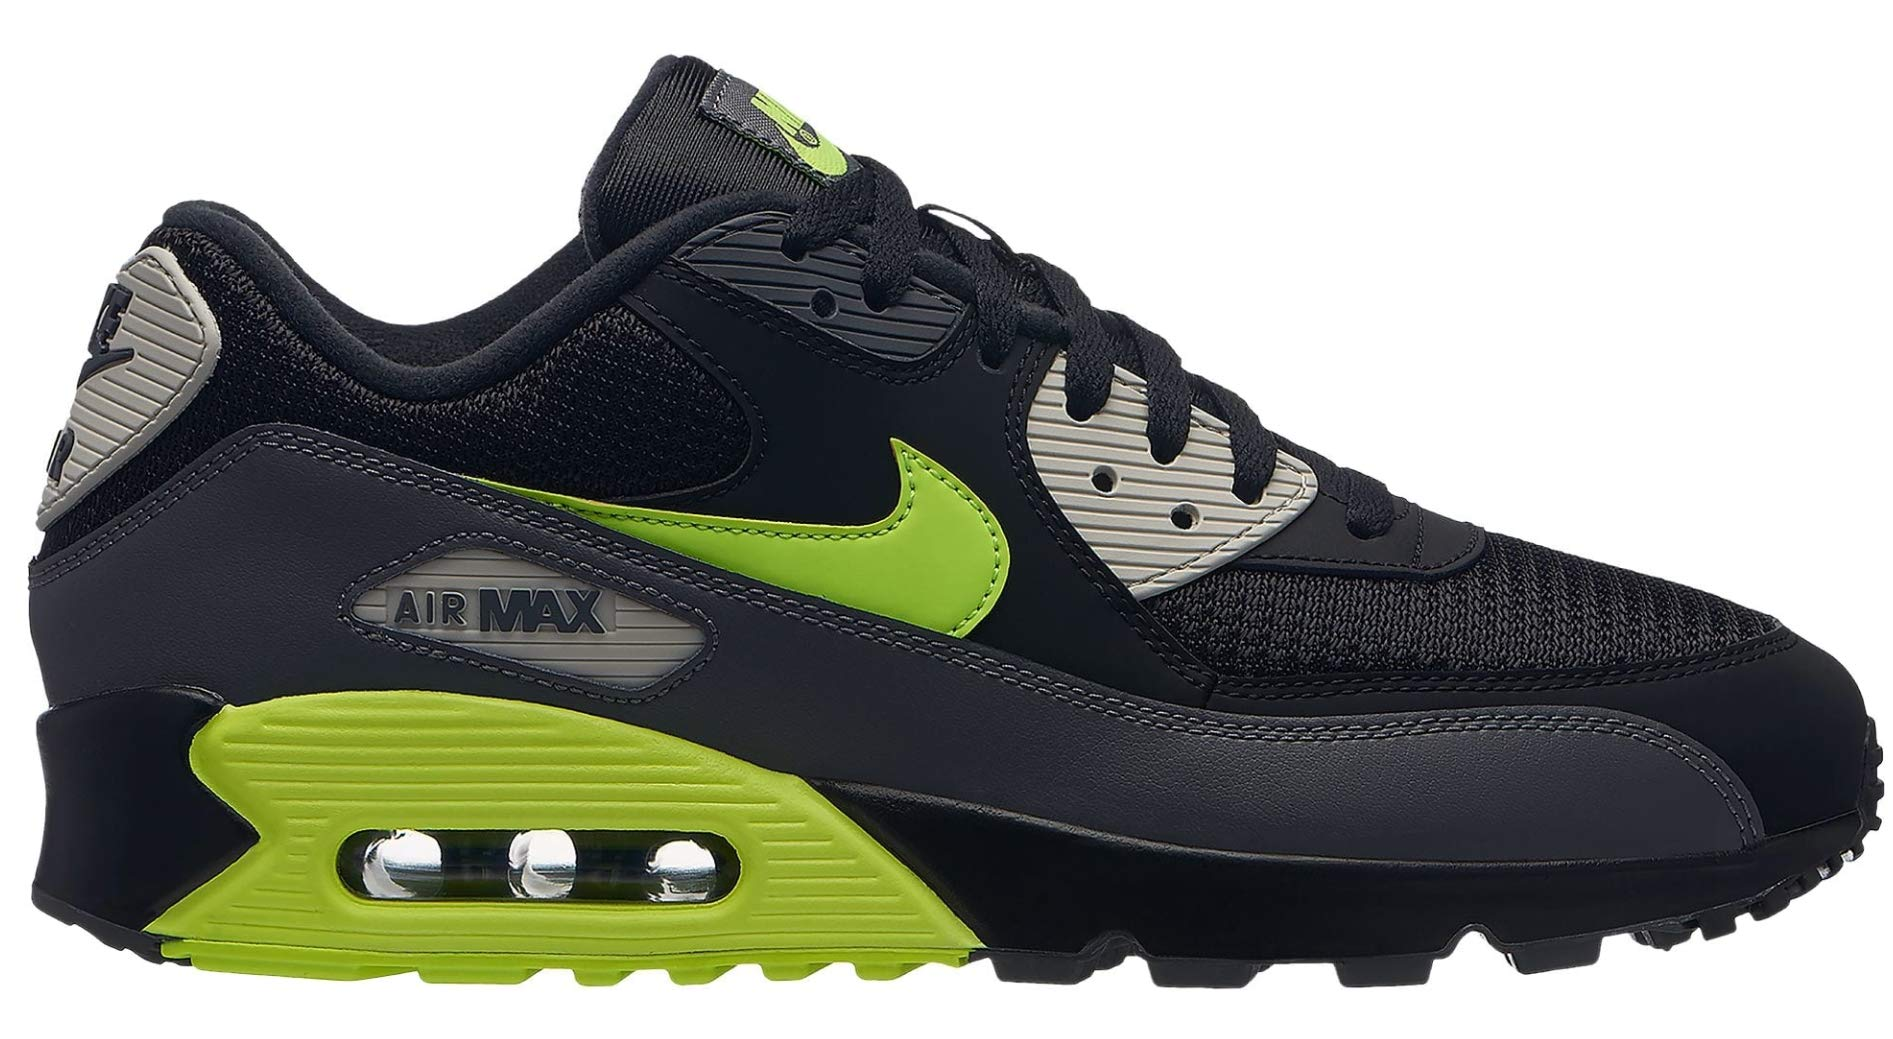 cheap for discount 2a25d b2009 Galleon - Nike Mens Air Max 90 Essential Running Shoes Dark Grey Volt Black Bone  AJ1285-015 Size 15